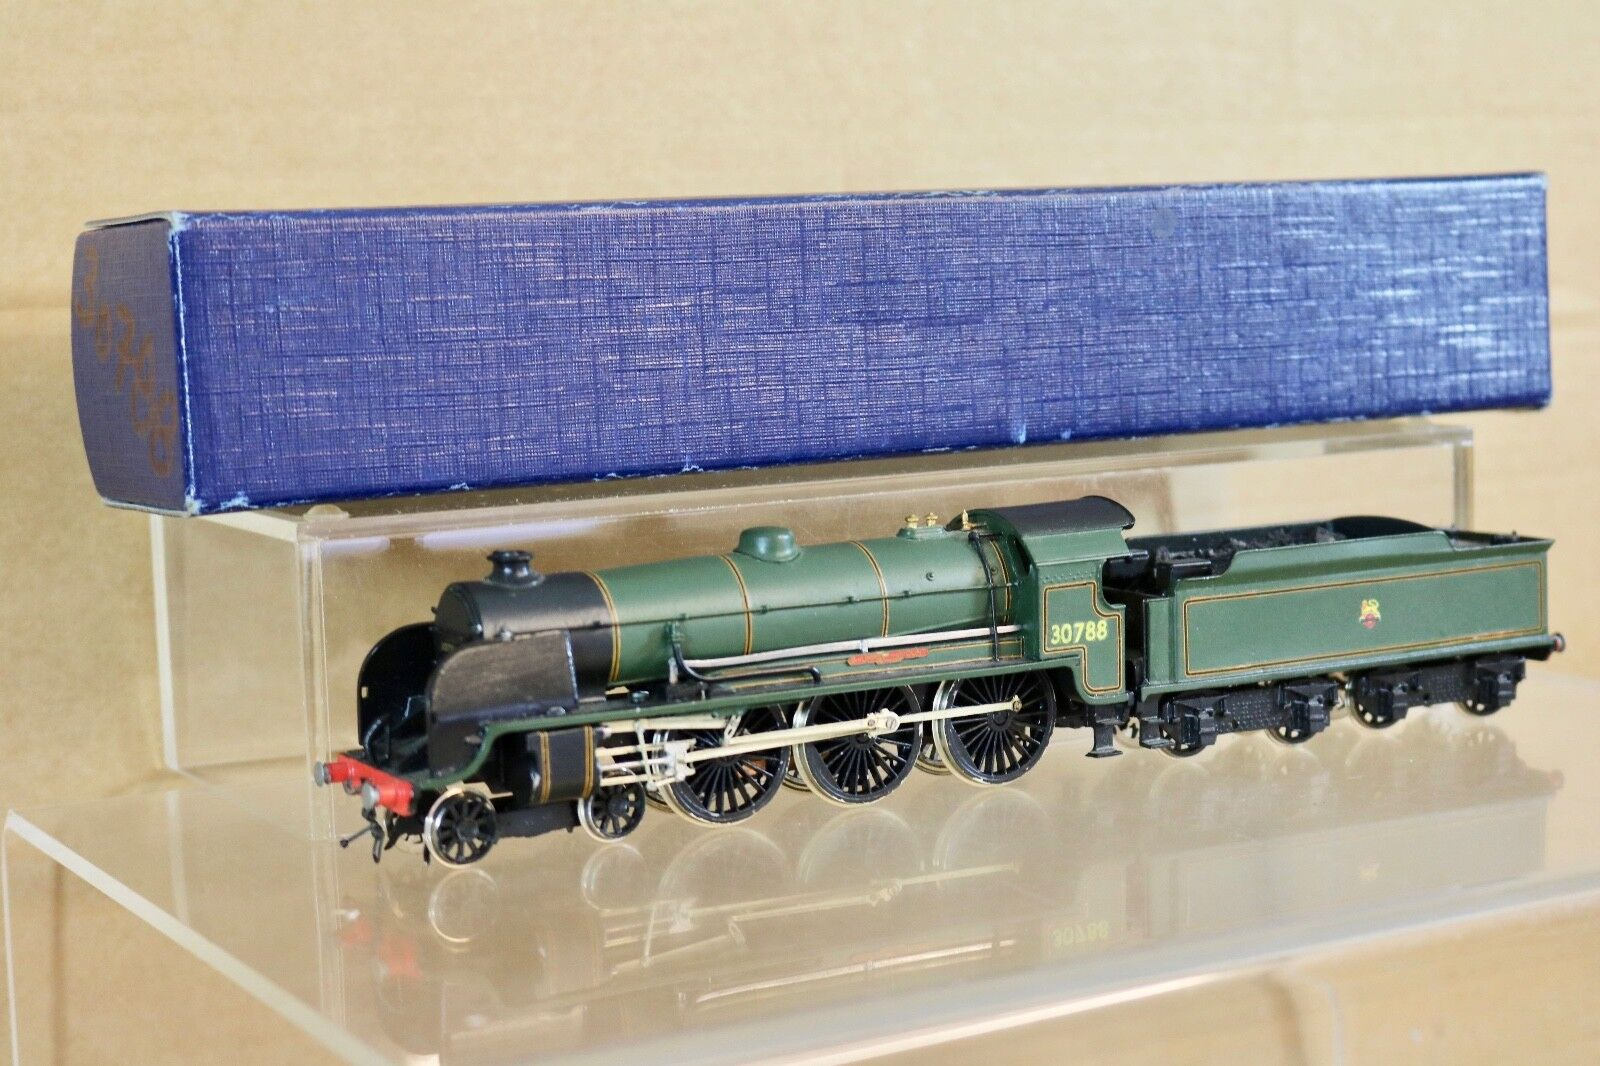 Wills KIT COSTRUITO BR 4-6-0 RE ARTÙ CLASSE LOCO 30788 SIR urre of the SUPPORTO